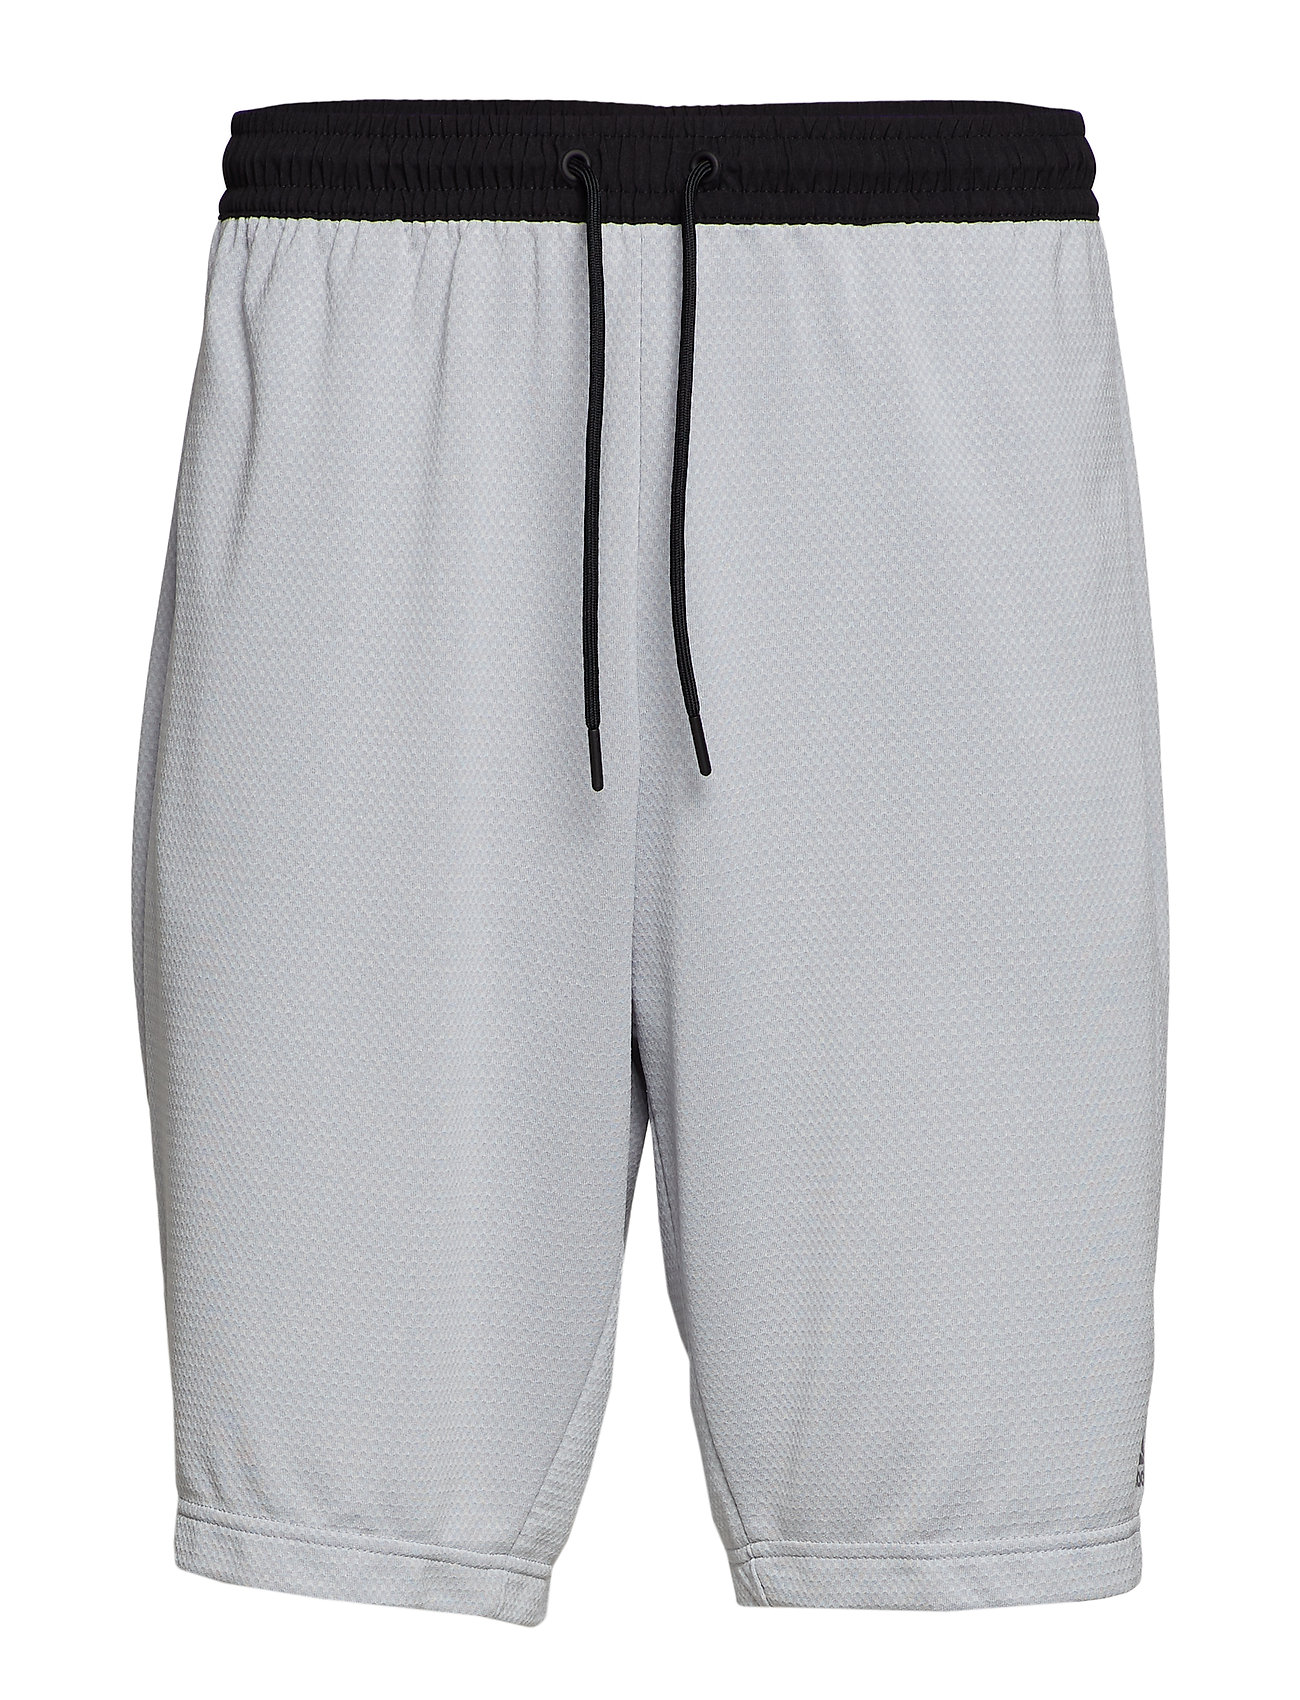 Reebok Performance WOR KN SHORT- PERFORMANCE - COLGR2